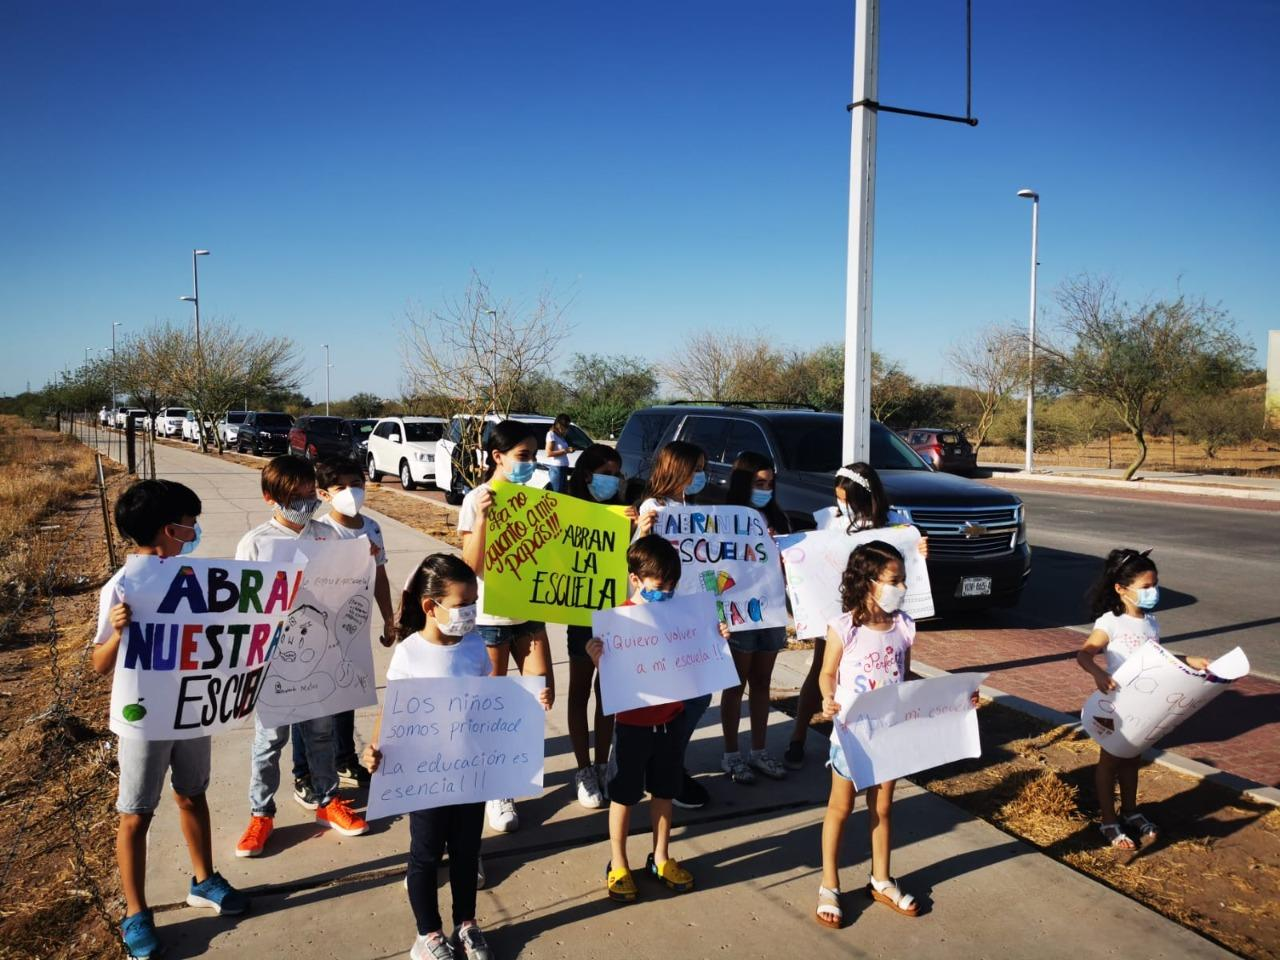 children hold up signs during protest